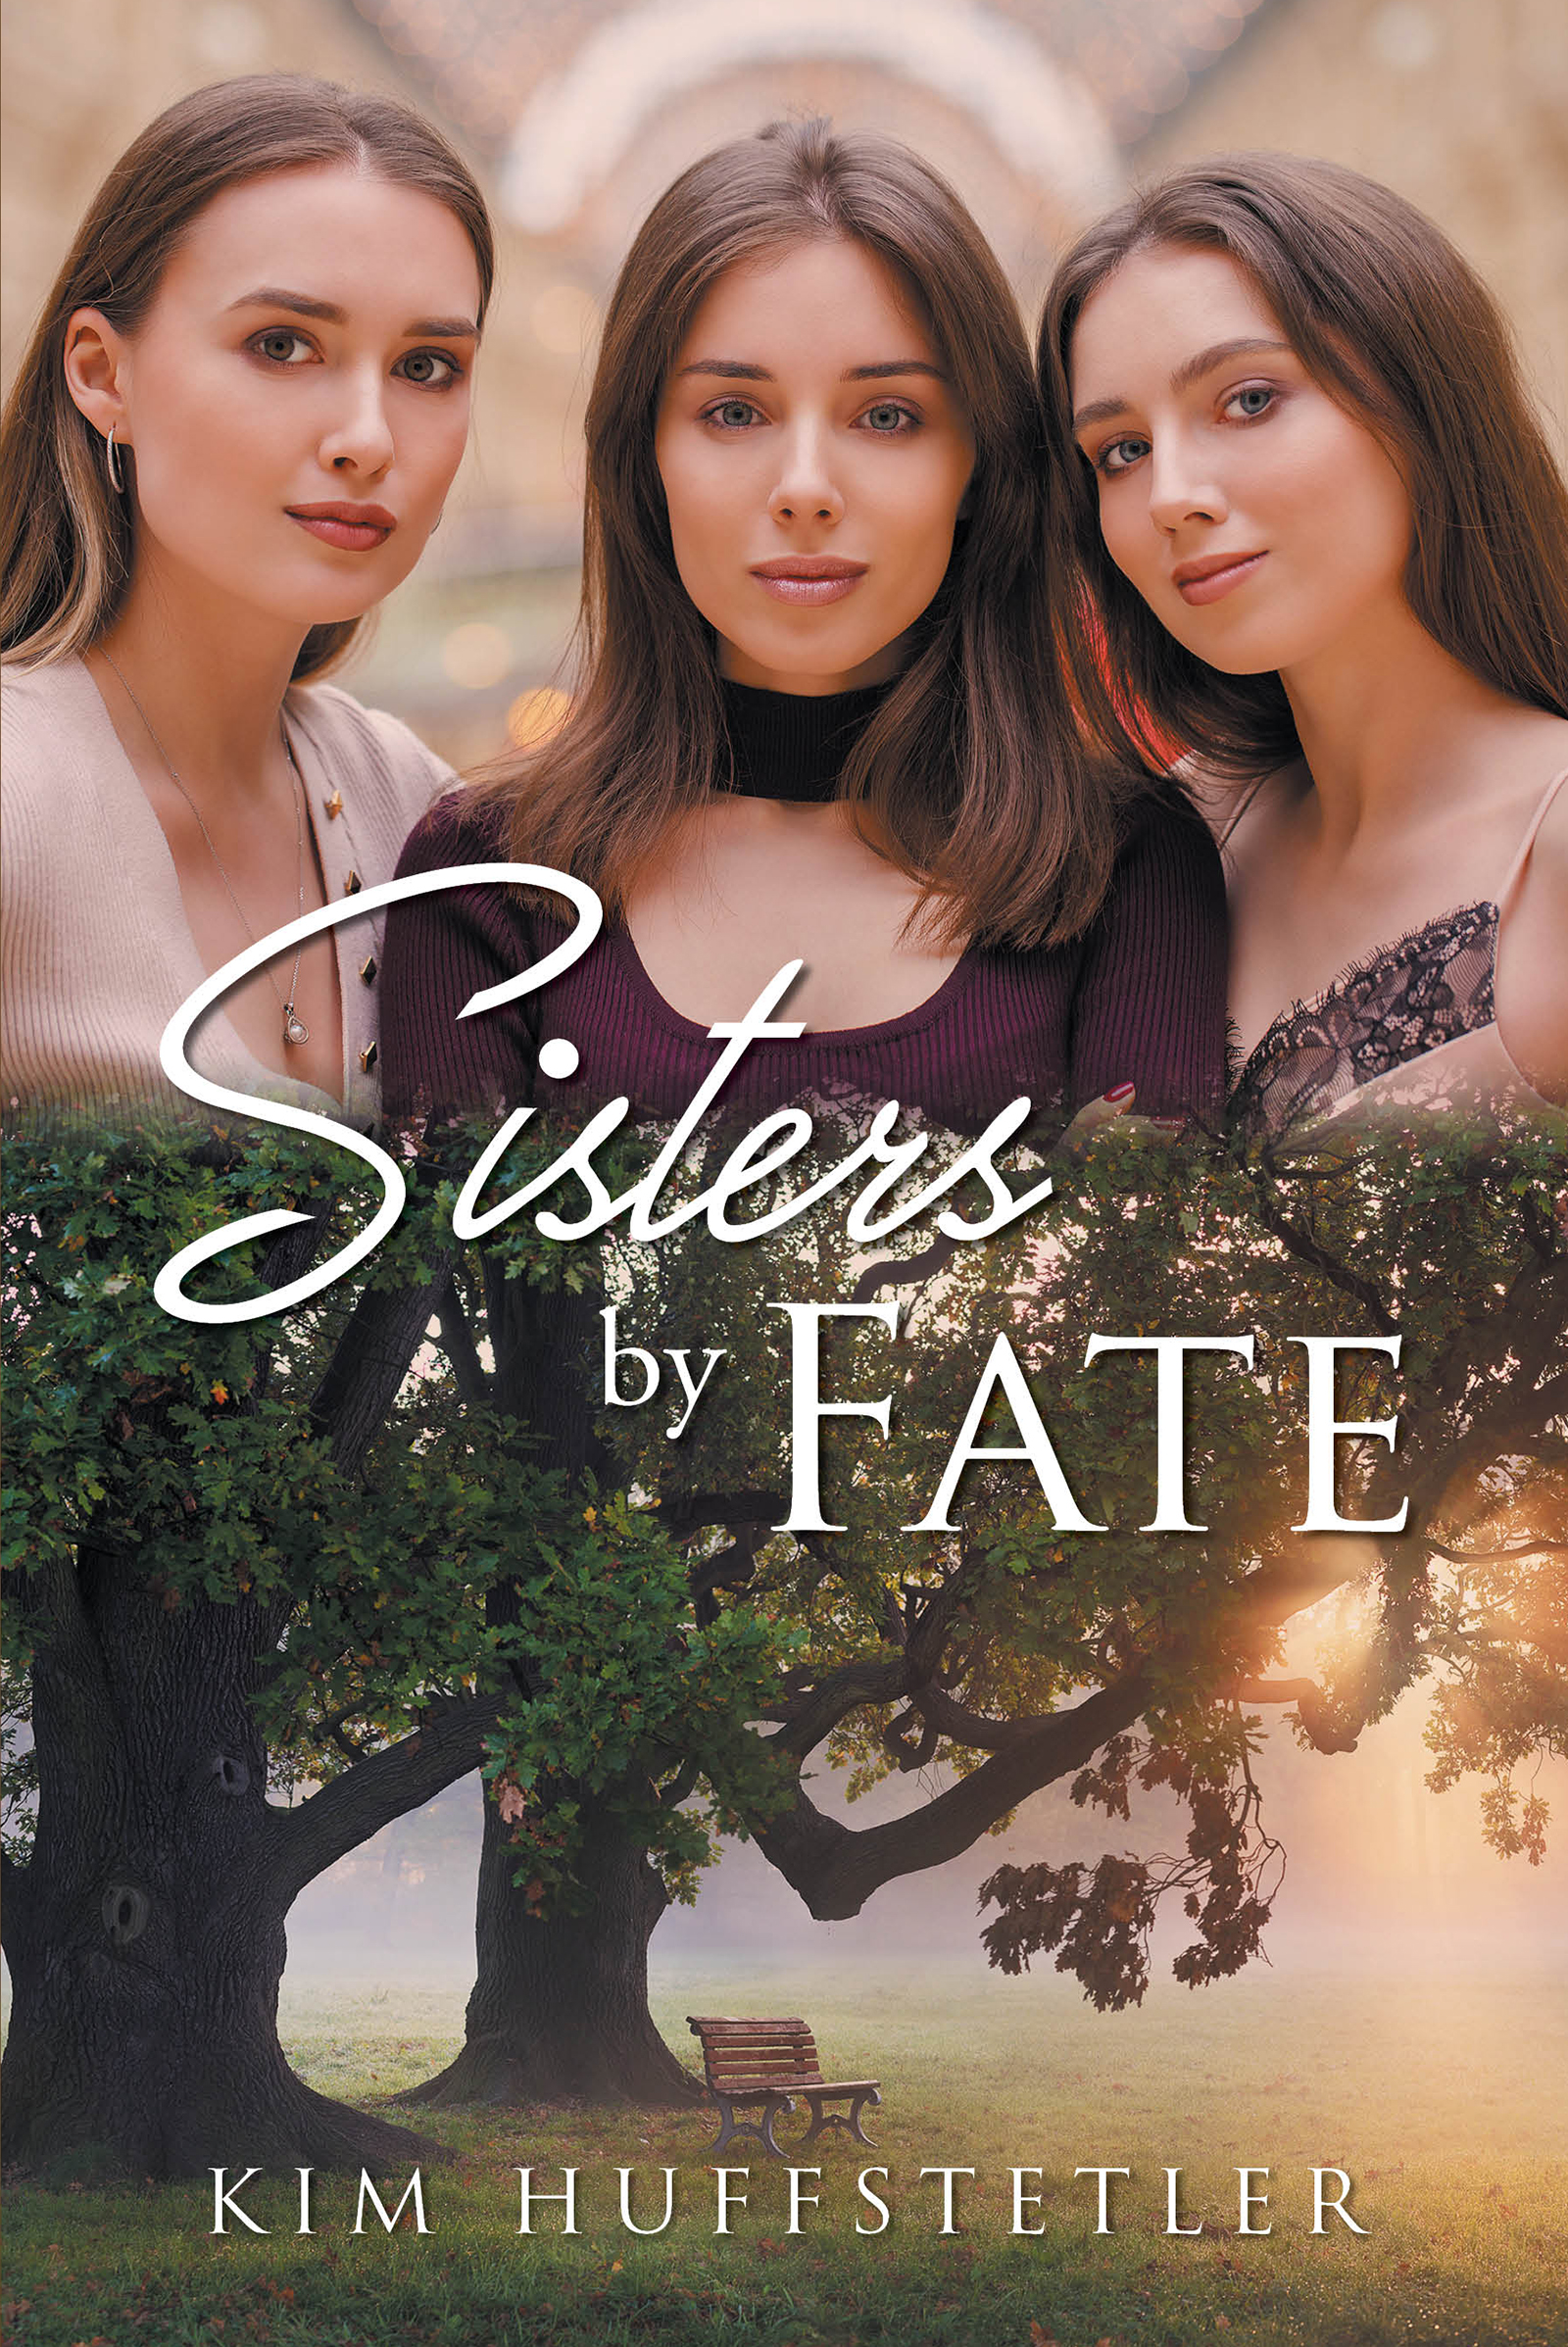 Compelling Sisters Story Conquers The Book Shelves